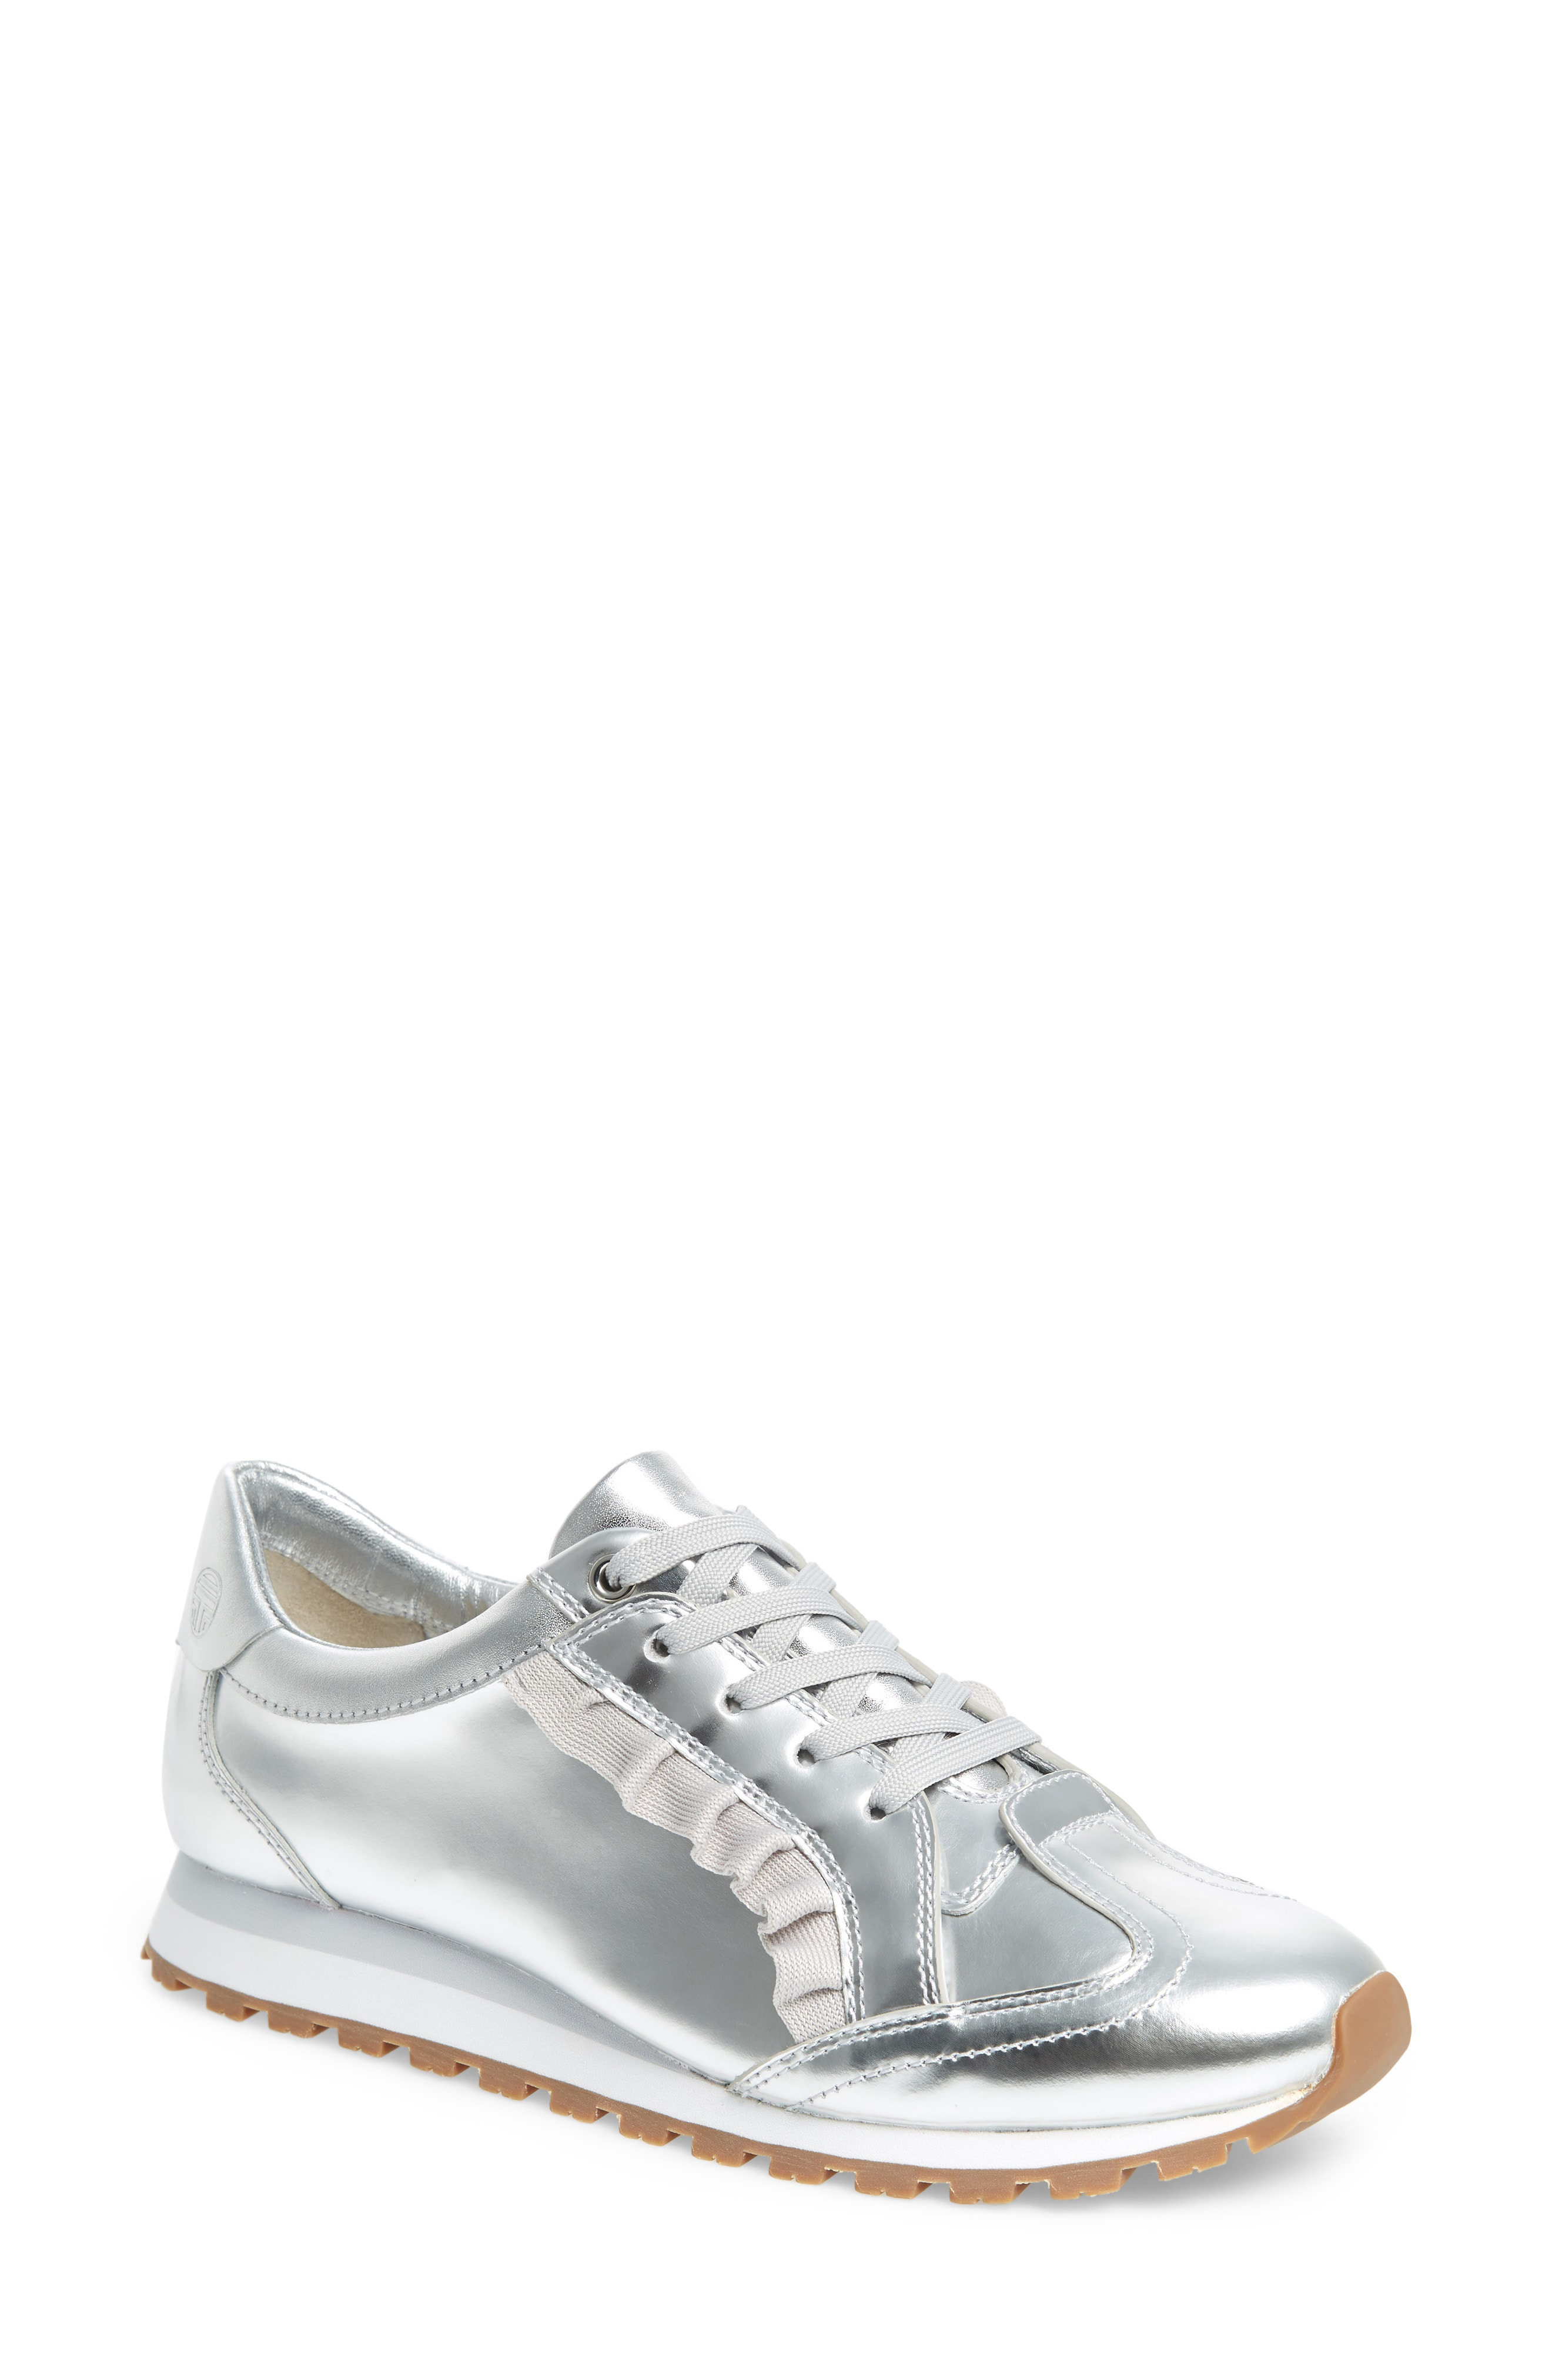 0c4a9a5900ed4c Tory Sport Women S Ruffle Trainer Leather Lace Up Sneakers In Silver ...